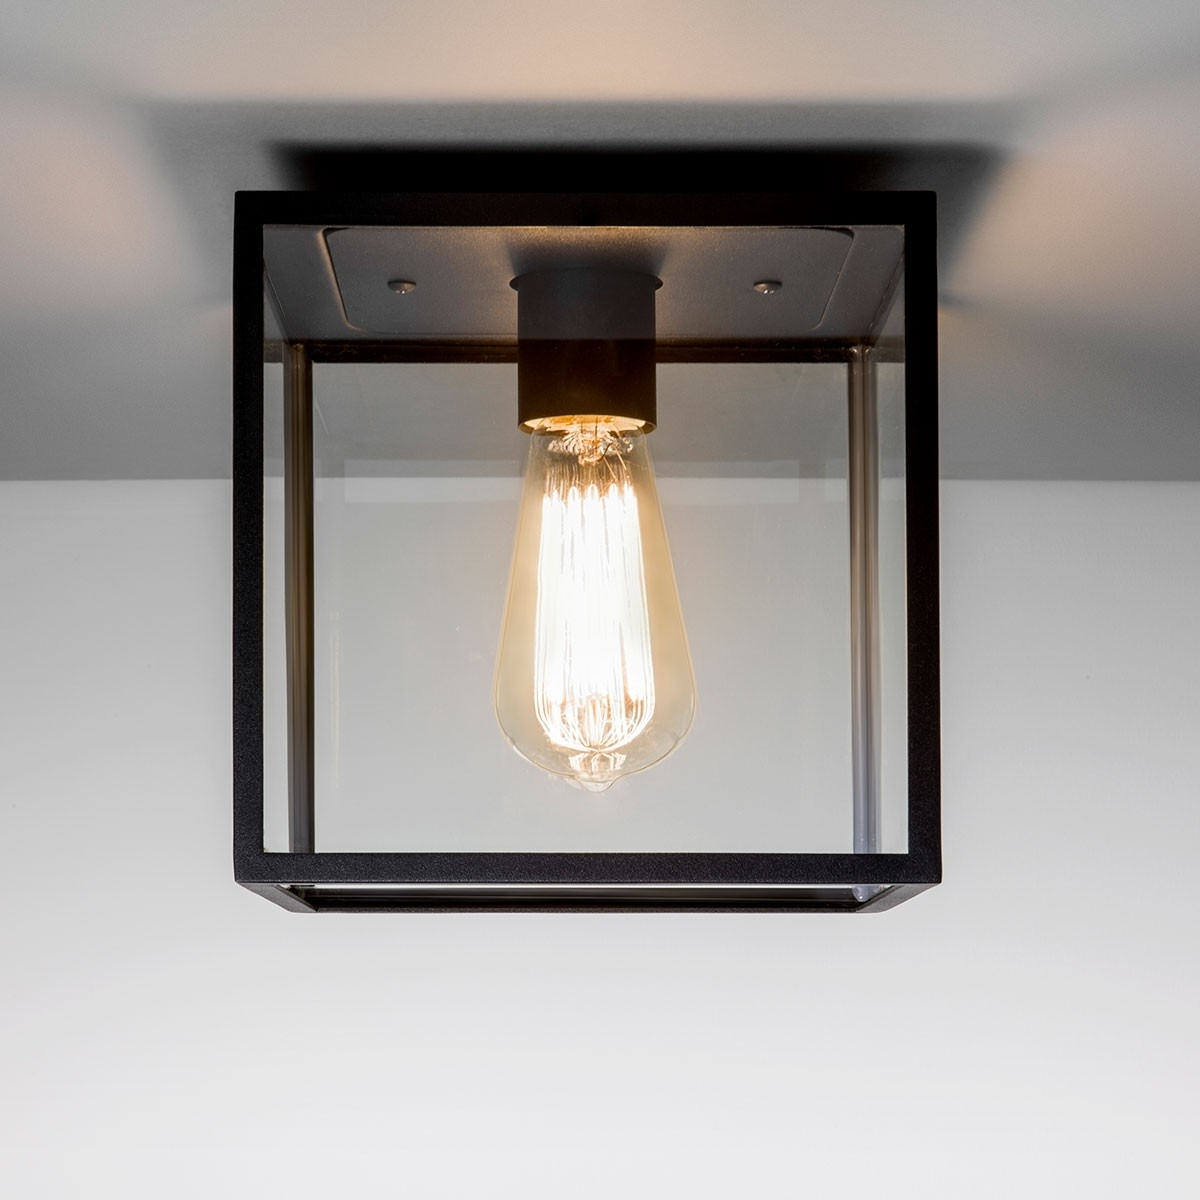 2019 Astro Box Black Outdoor Ceiling Light At Uk Electrical Supplies (View 3 of 20)